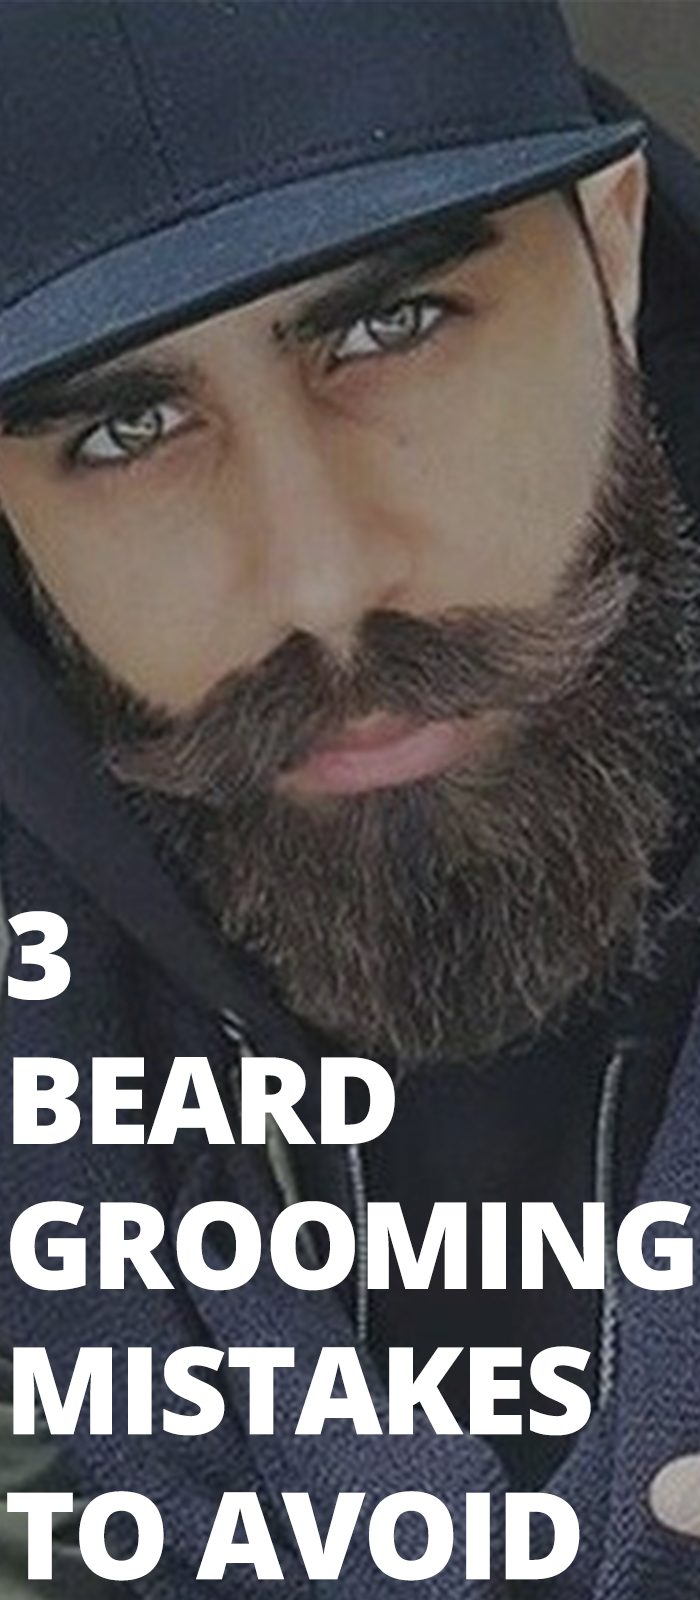 3 Beard Grooming Mistakes To Avoid